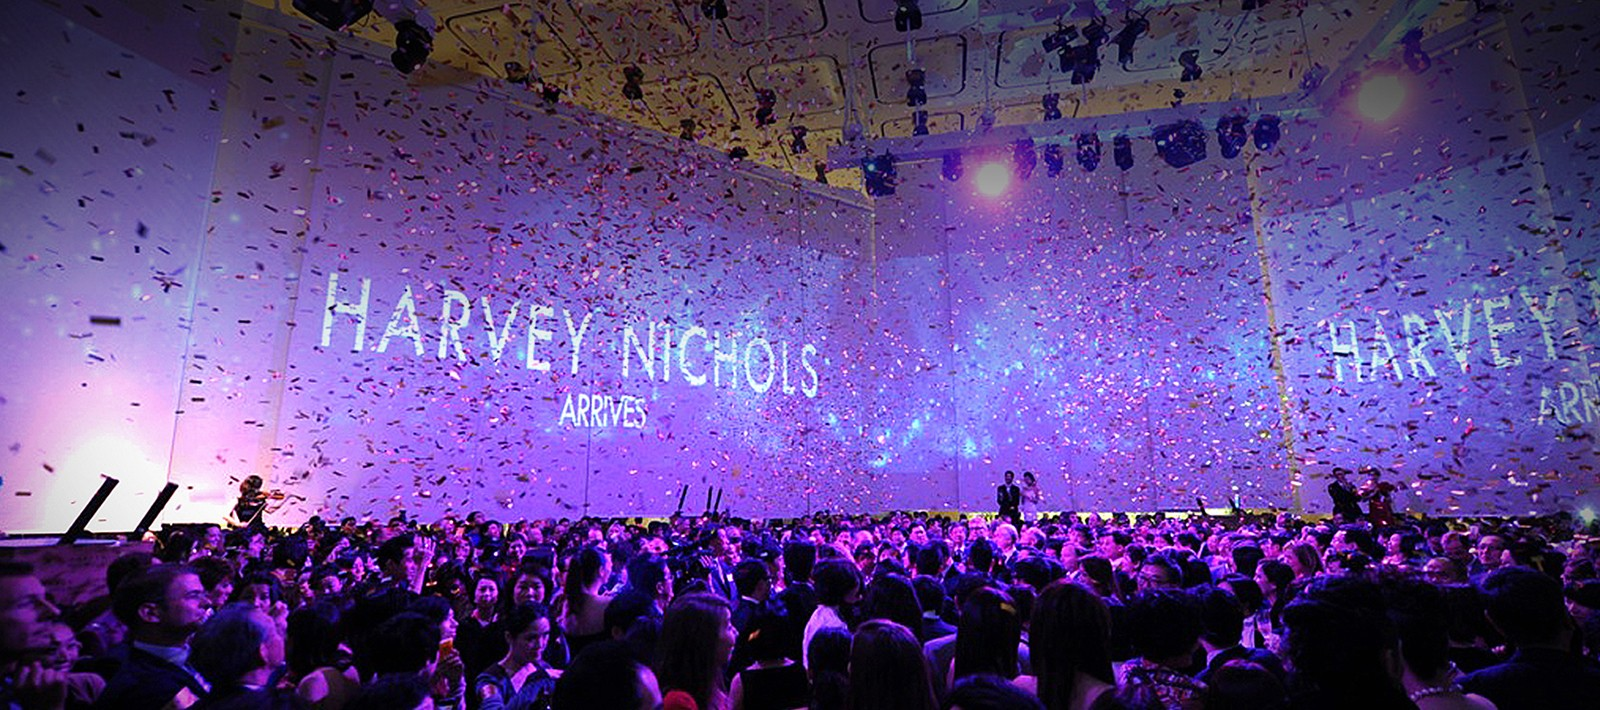 Grand opening marketing for Harvey Nichols